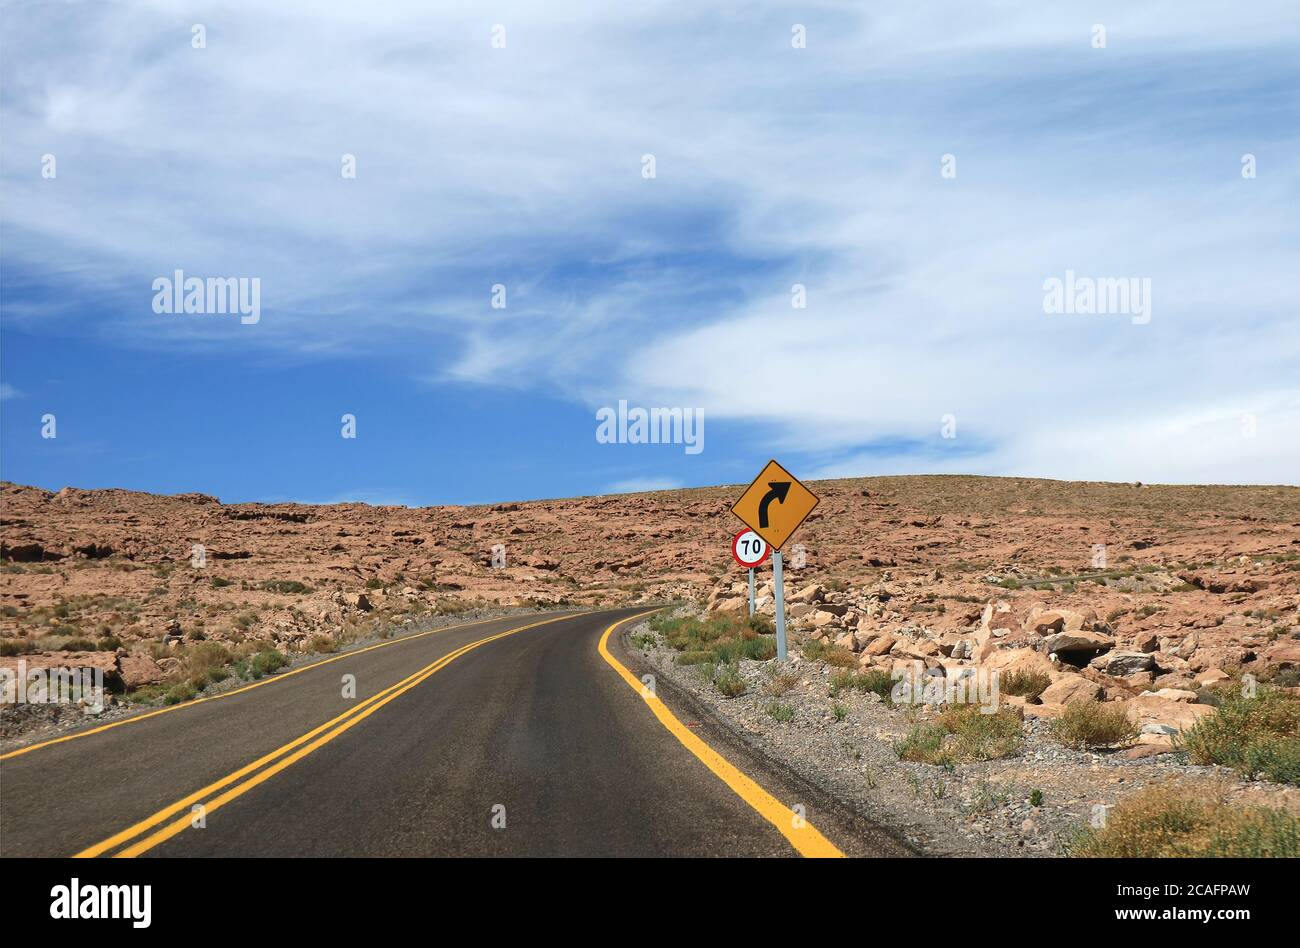 Right Curve and Speed Limit Traffic Signpost on the Empty Road in Atacama Desert, Los Flamencos National Reserve, Northern Chile, South America Stock Photo